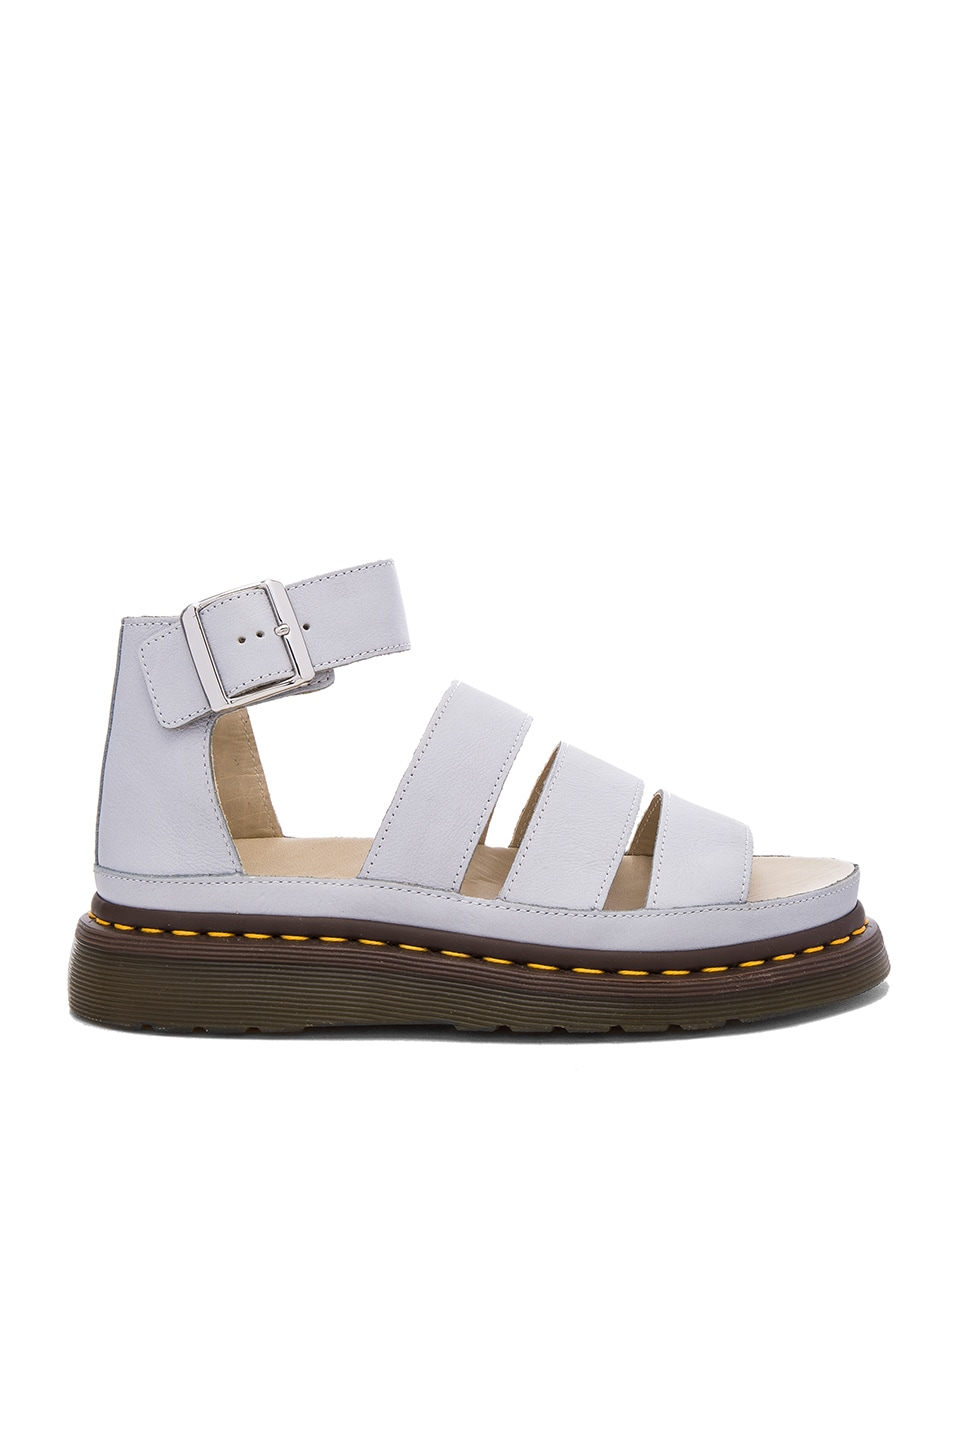 Dr. Martens Clarissa Chunky Strap Sandal in Blue Moon